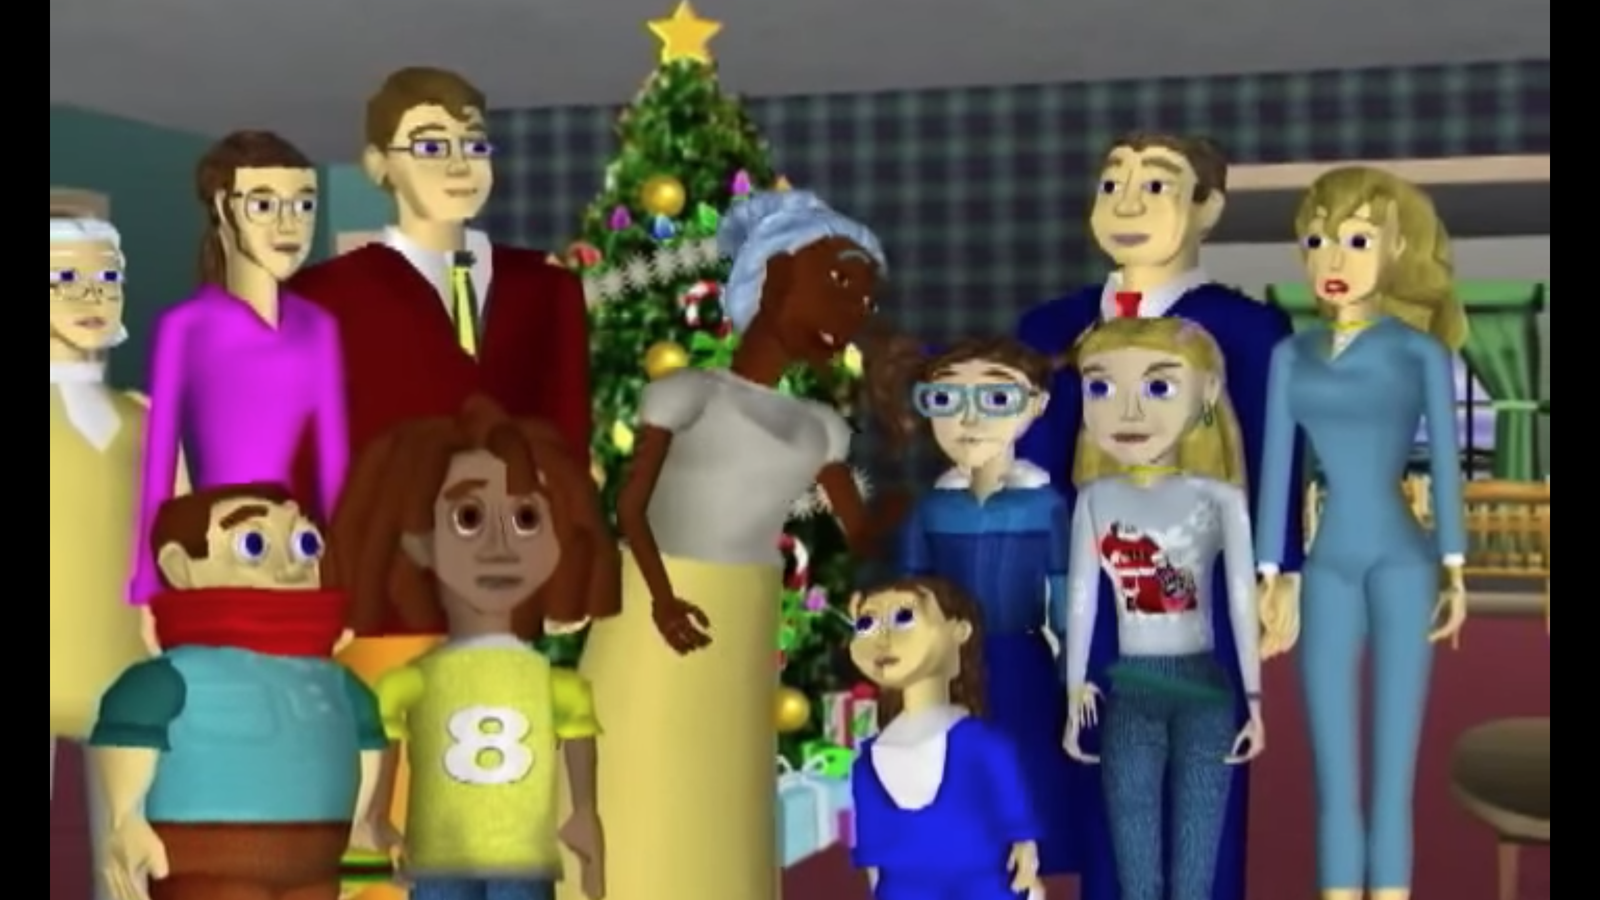 Spread some holiday fear with this horrific 2002 computer-animated ...